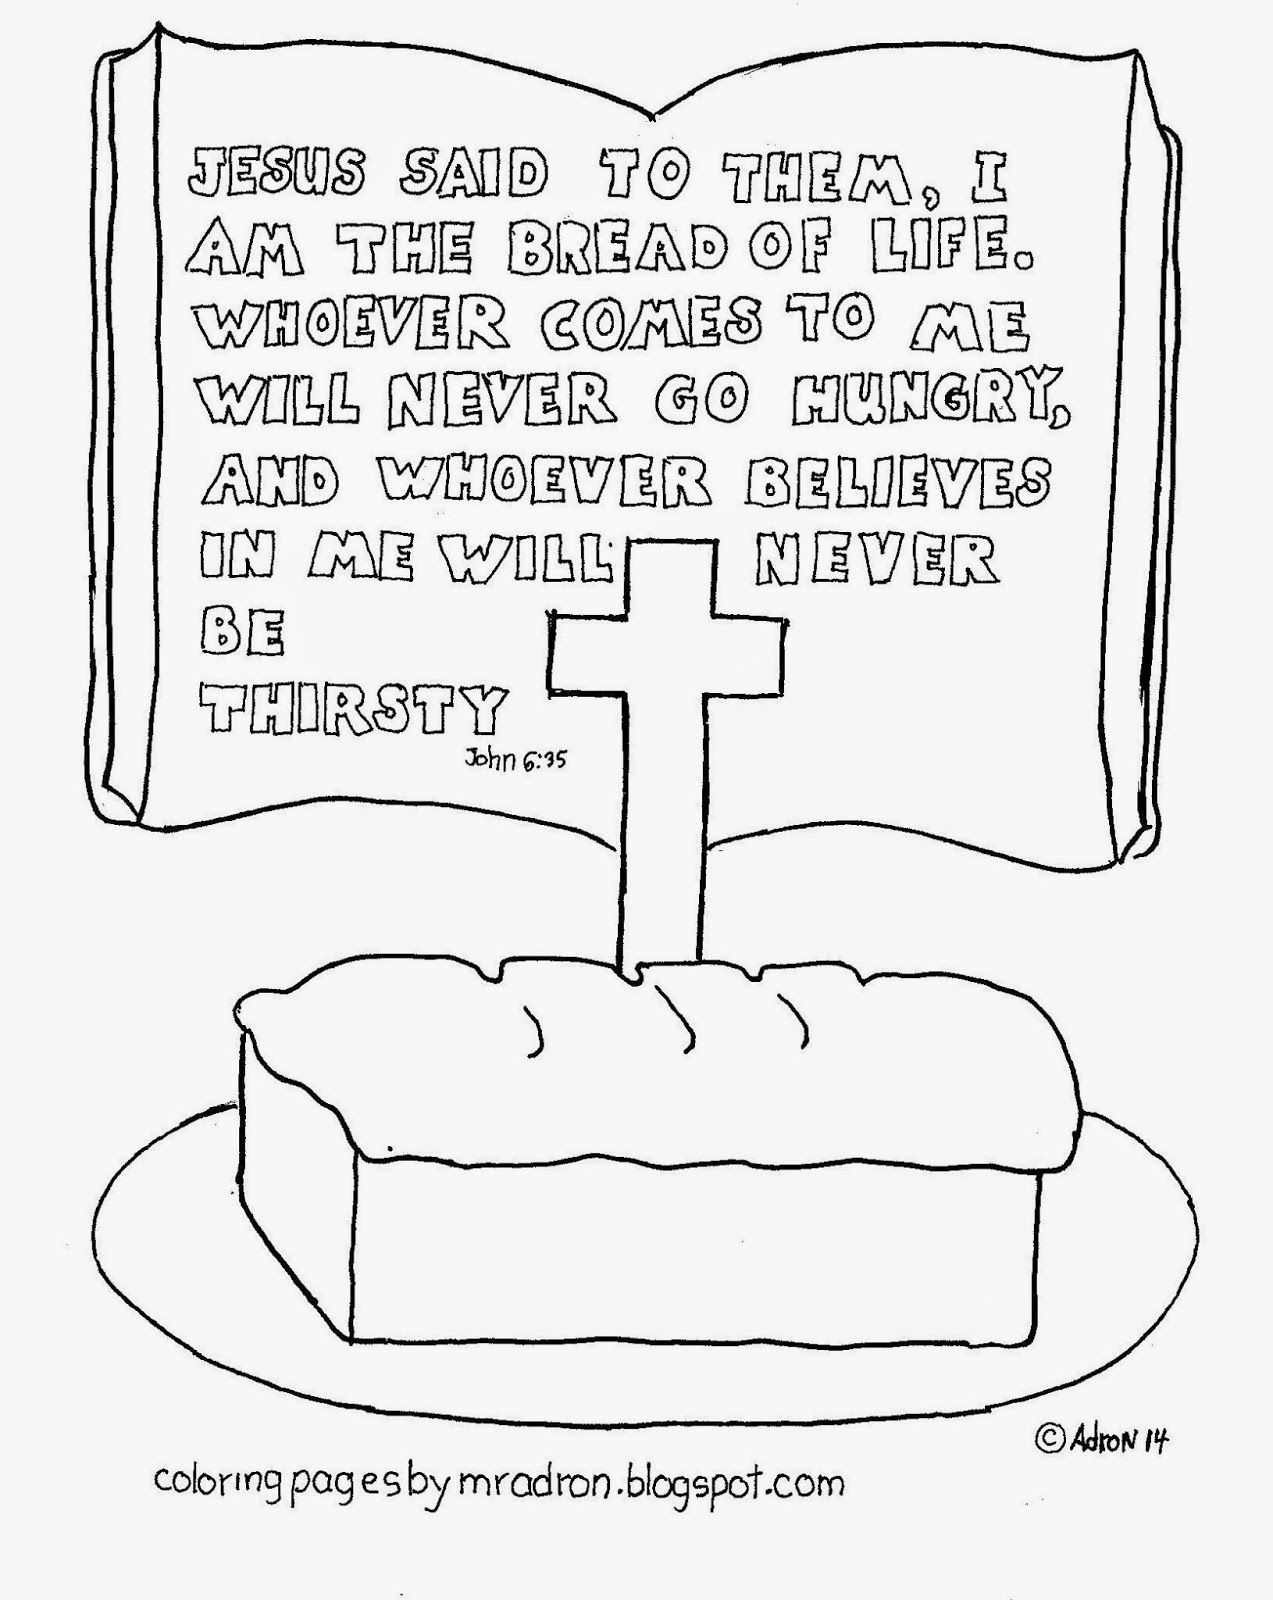 Coloring Pages For Kids By Mr Adron: I Am The Bread Of Life